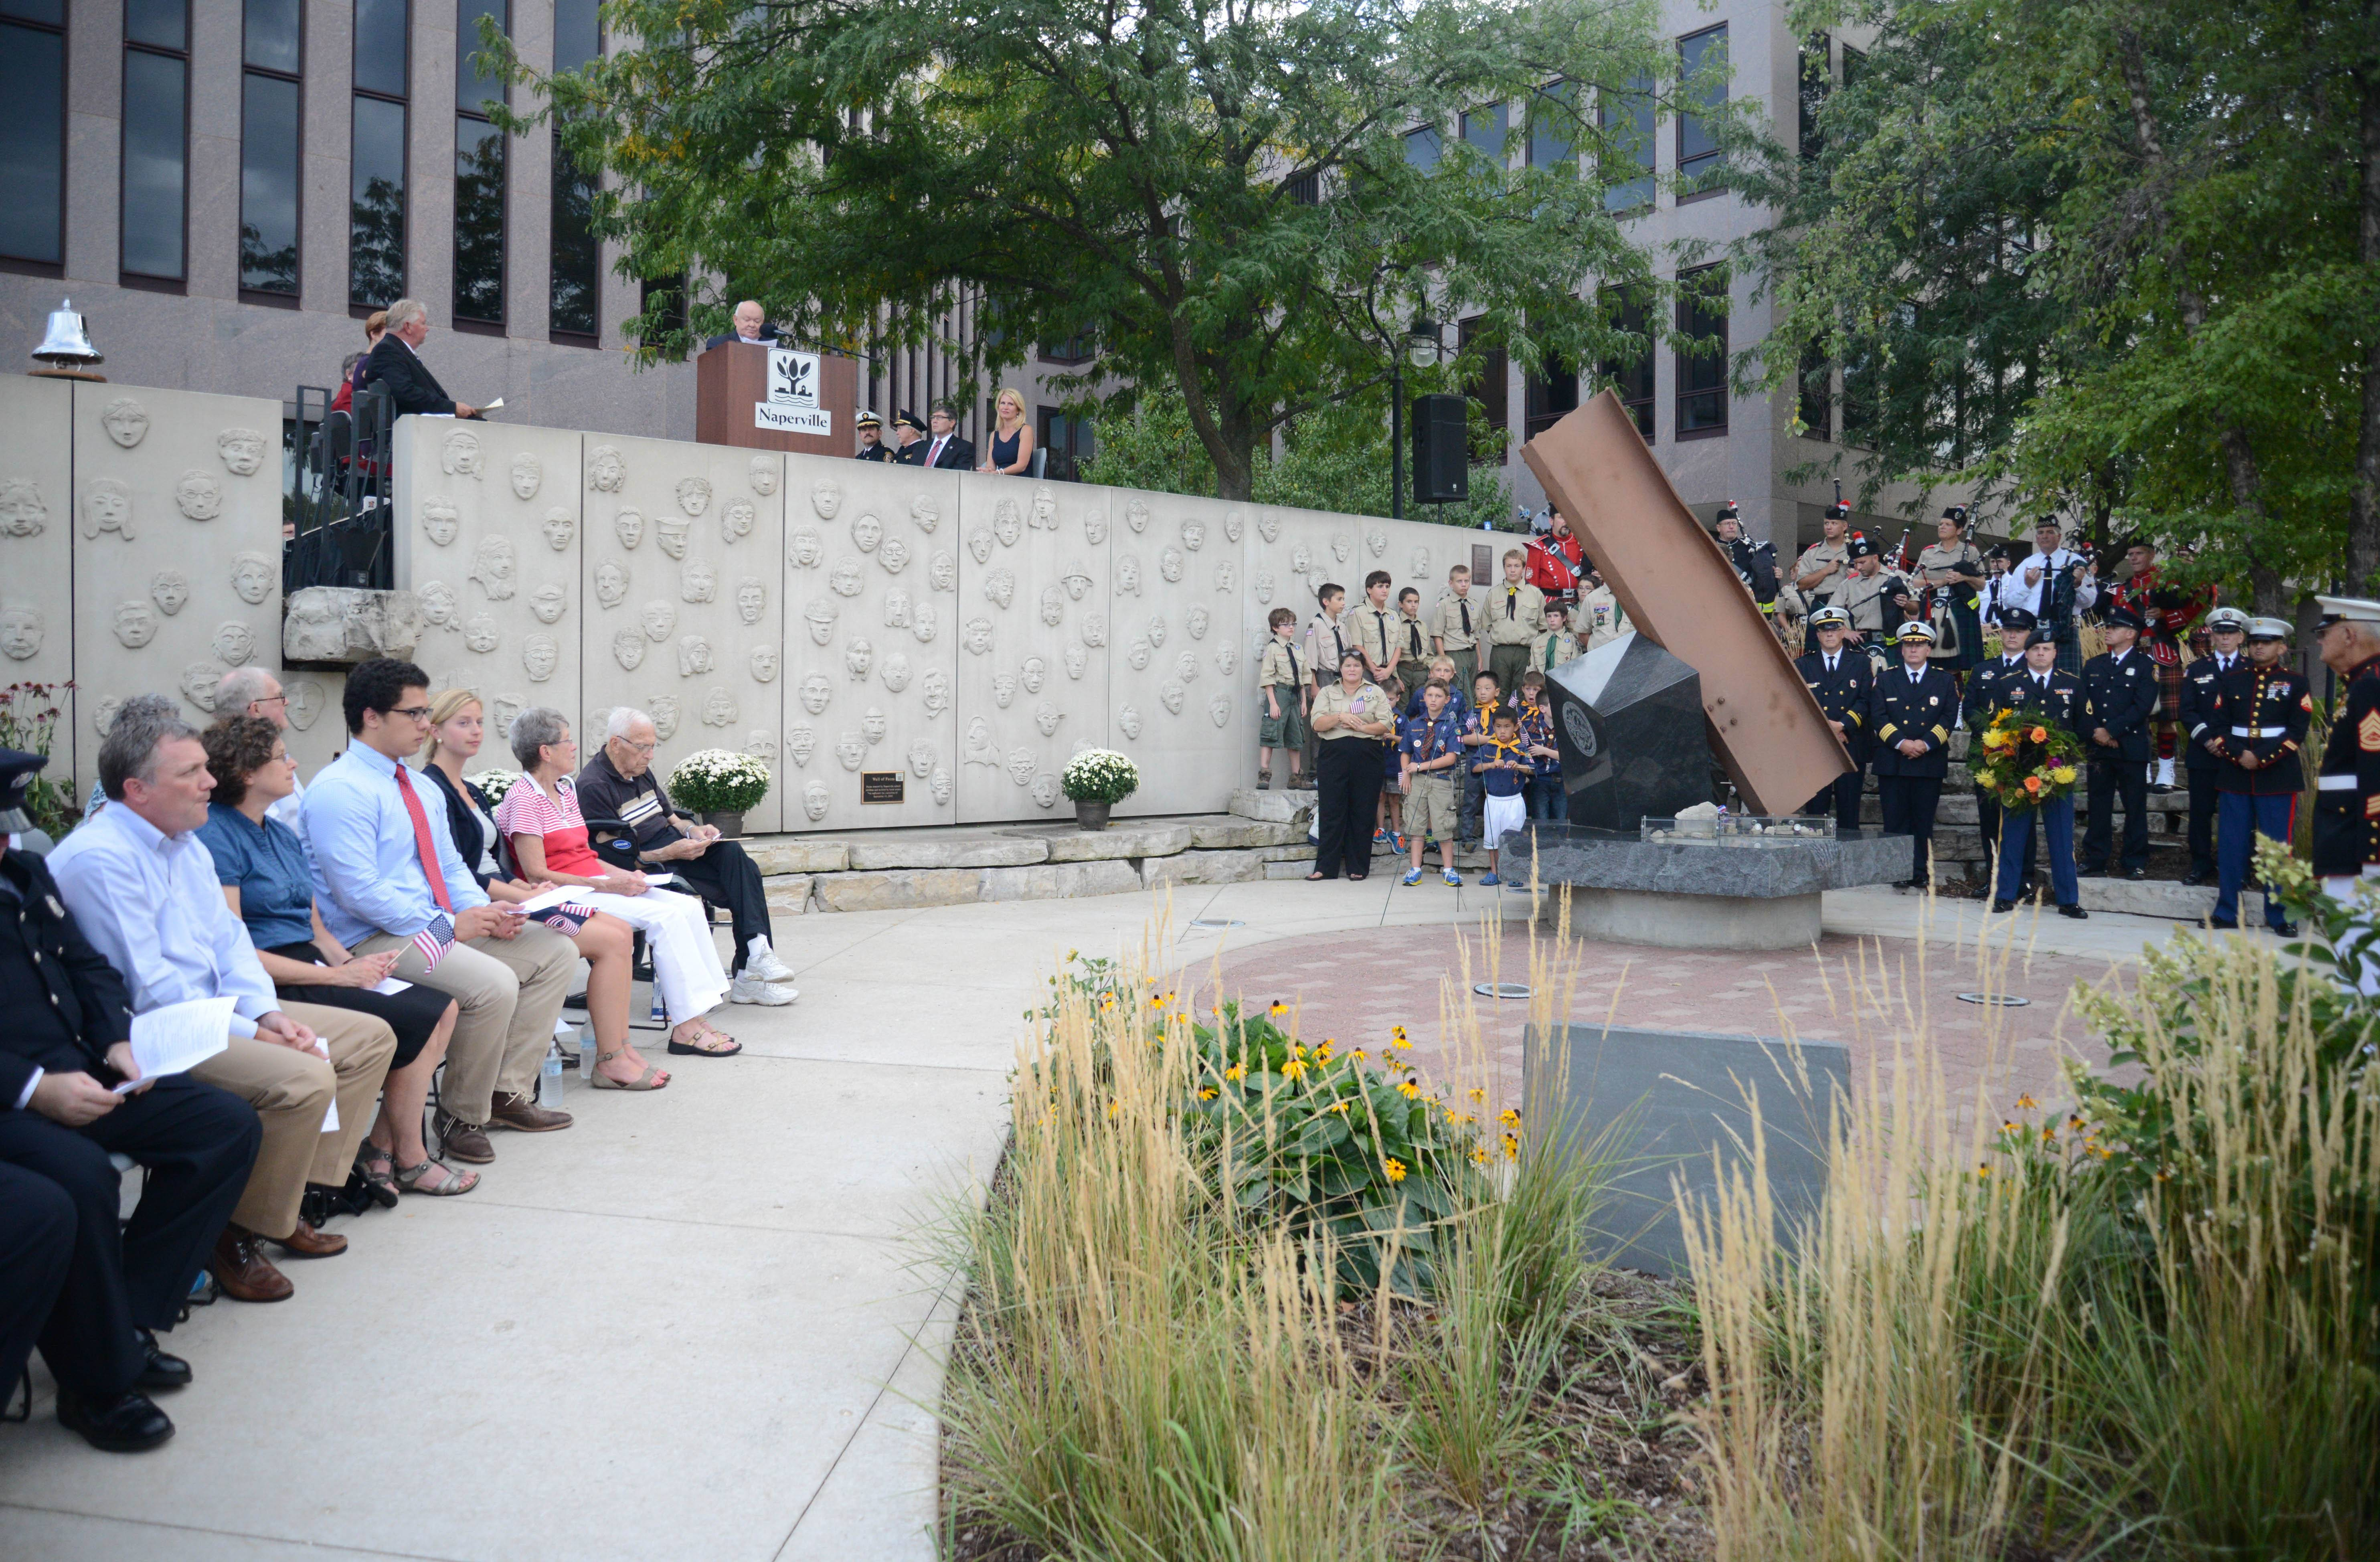 Naperville honored those killed in the Sept. 11 terrorist attacks with a ceremony at 6 p.m. at the Comander. Dan Shanower Memorial behind the municipal center on the Riverwalk. The carillon bells tolled at 5:30 p.m. and the Naperville Municipal Band playing at 5:45 before the ceremony.